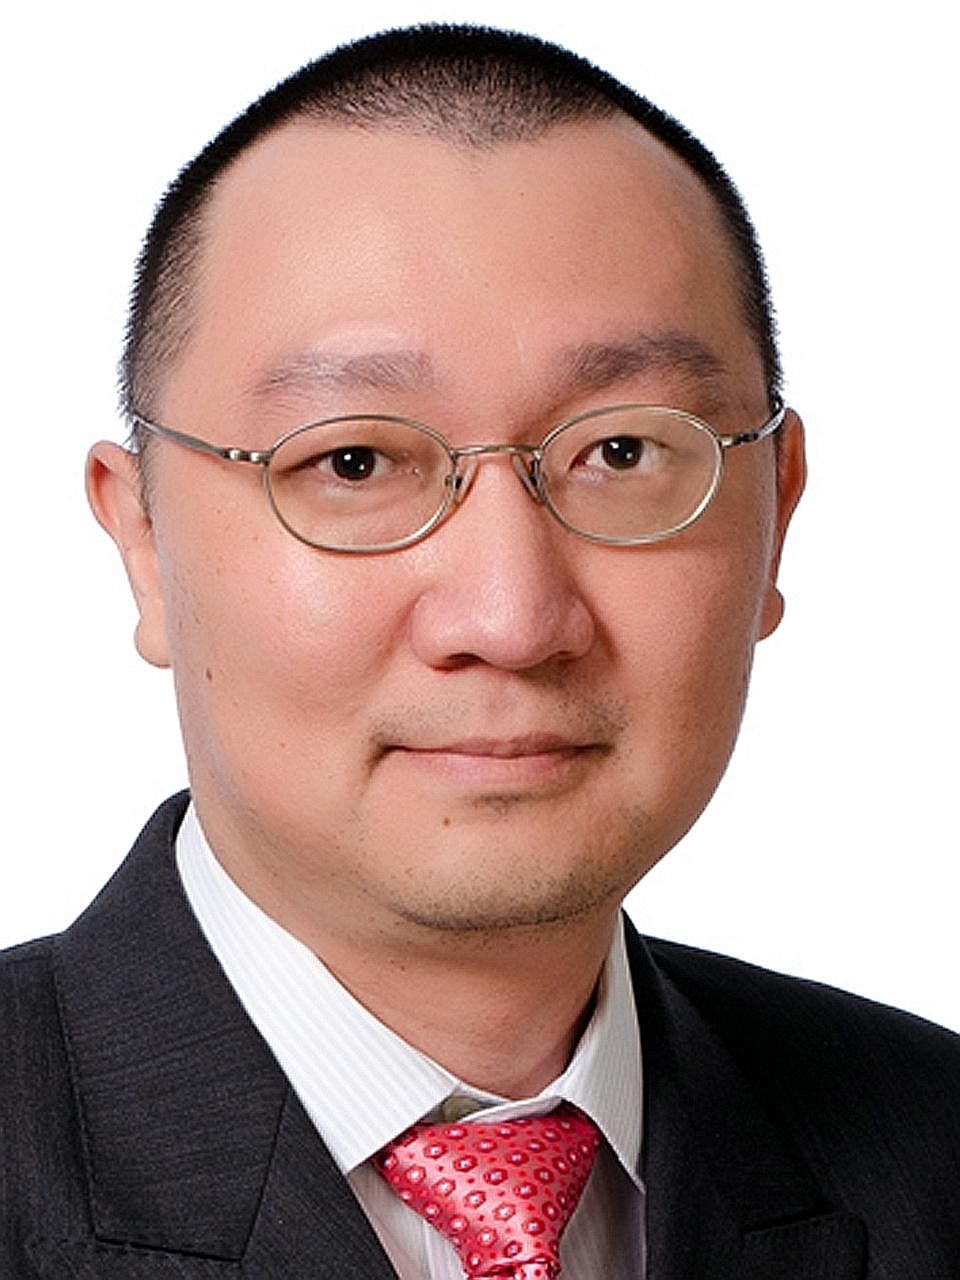 Mr Lam cautions that US President-elect Donald Trump's trade and immigration policies may threaten growth.